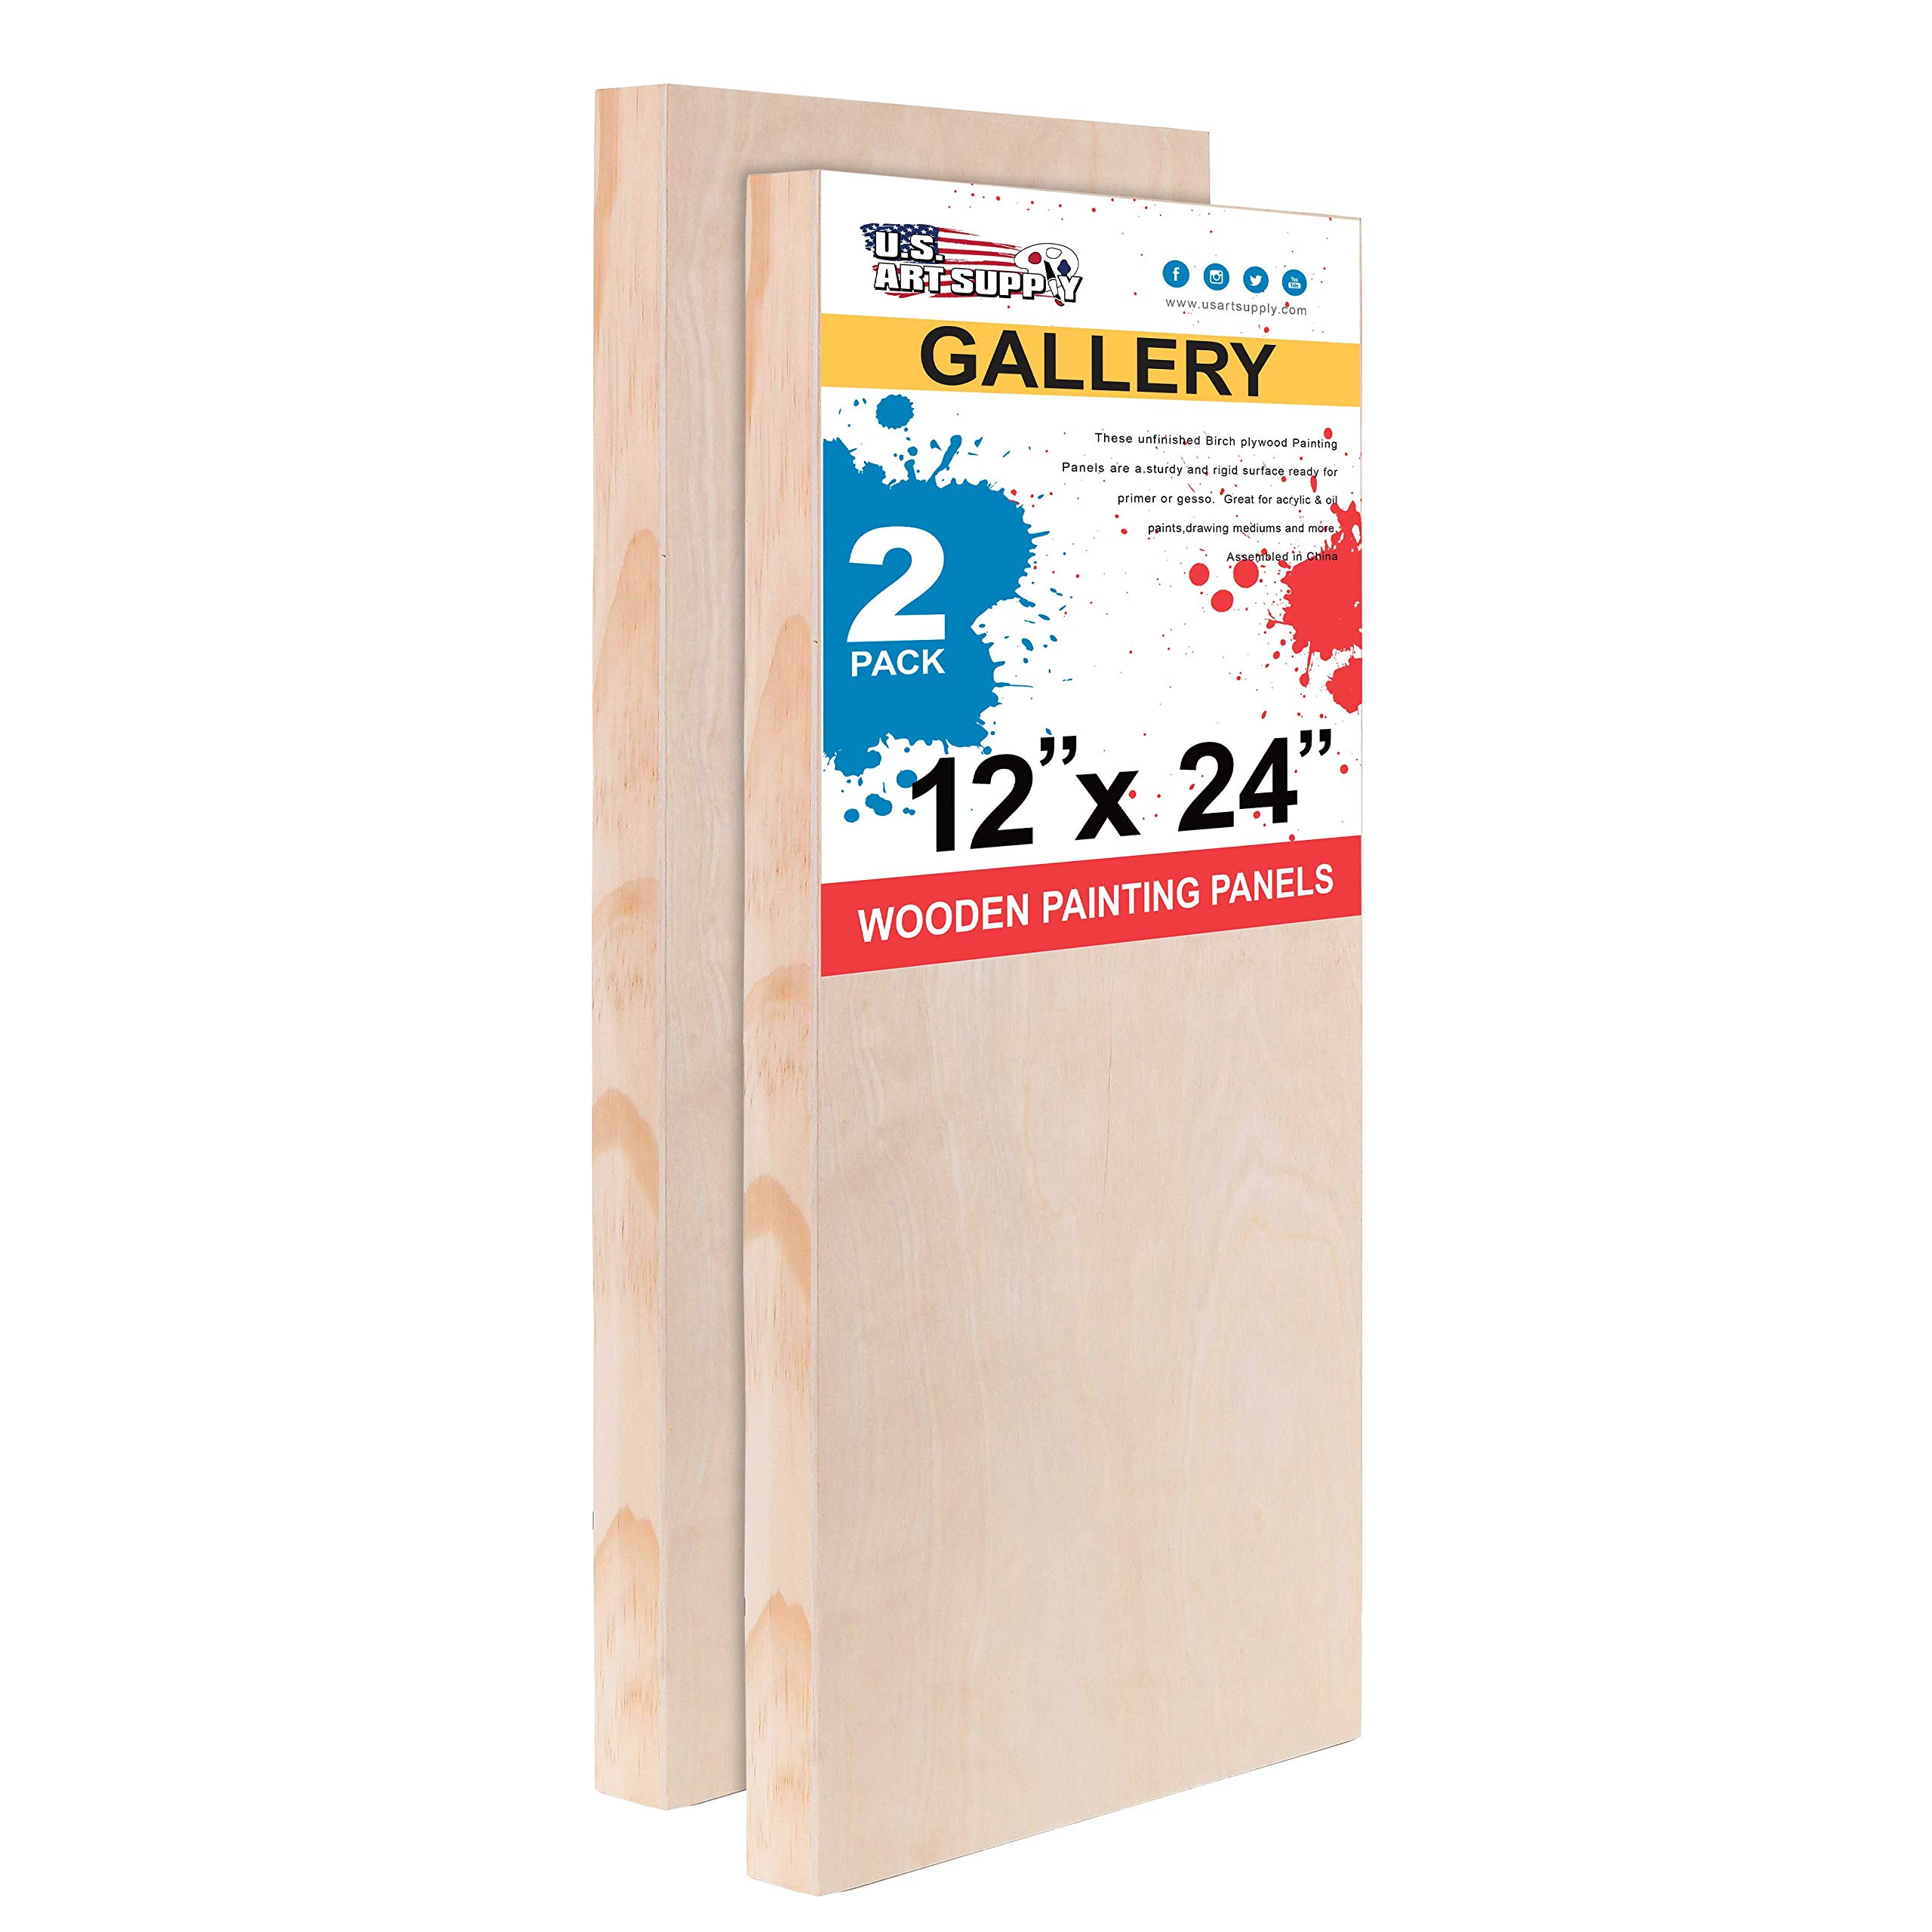 U.S. Art Supply 12'' x 24'' Birch Wood Paint Pouring Panel Boards, Gallery 1-1/2'' Deep Cradle (Pack of 2) - Artist Depth Wooden Wall Canvases - Painting Mixed-Media Craft, Acrylic, Oil, Encaustic by U.S. Art Supply